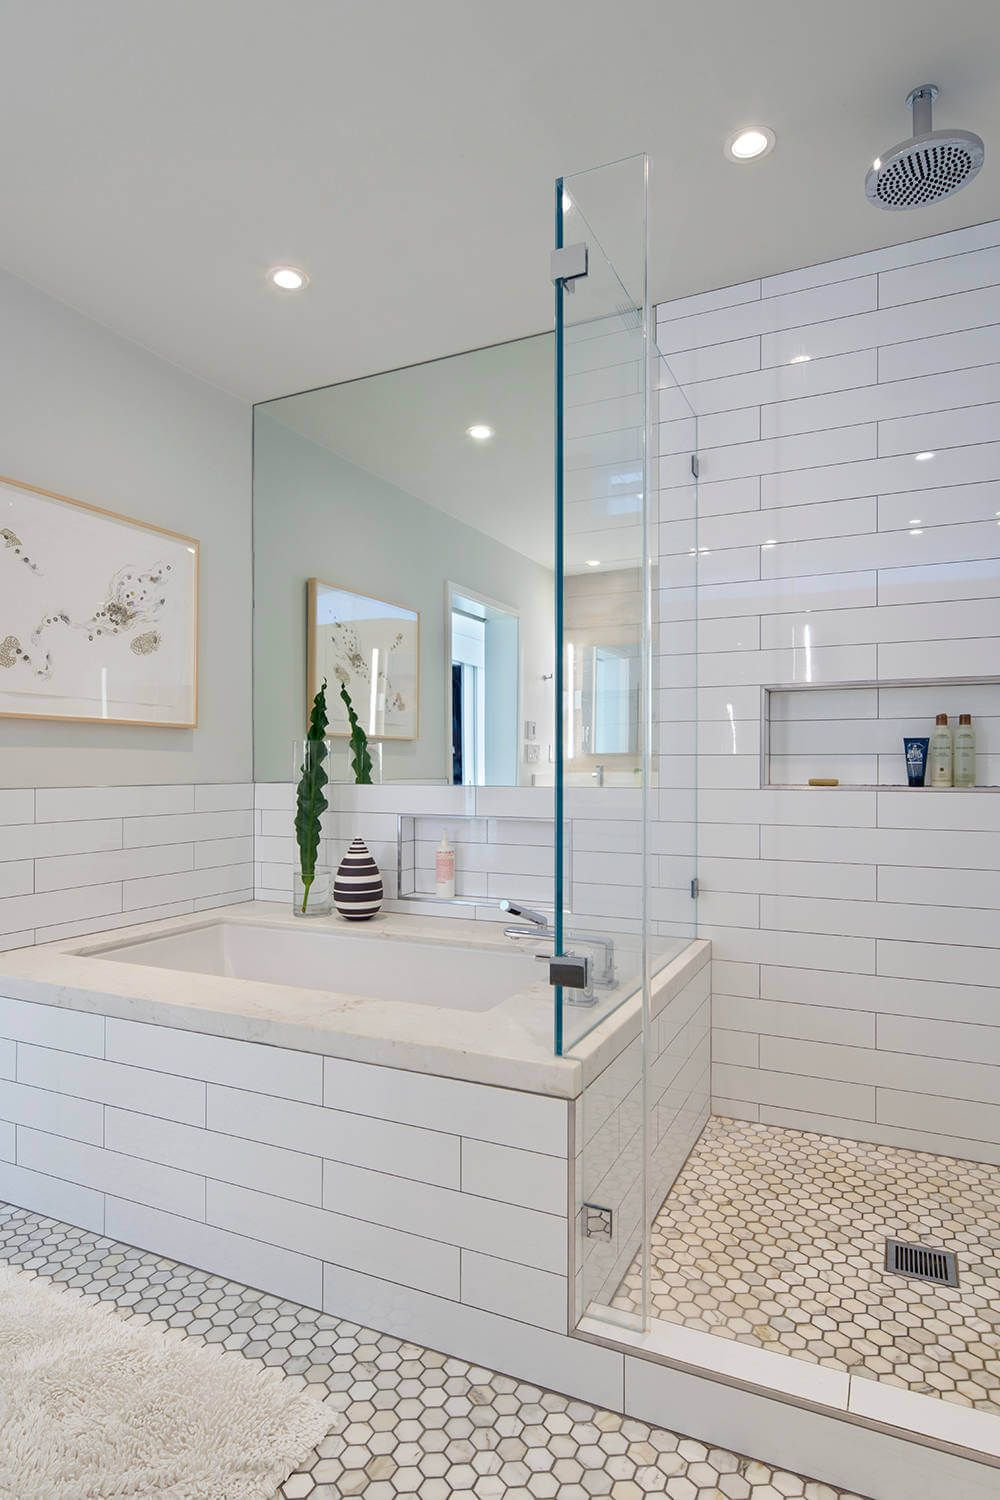 House in berkeley hills by yamamar design modern bath oversized subway tile marble hexagonal Marble hex tile bathroom floor